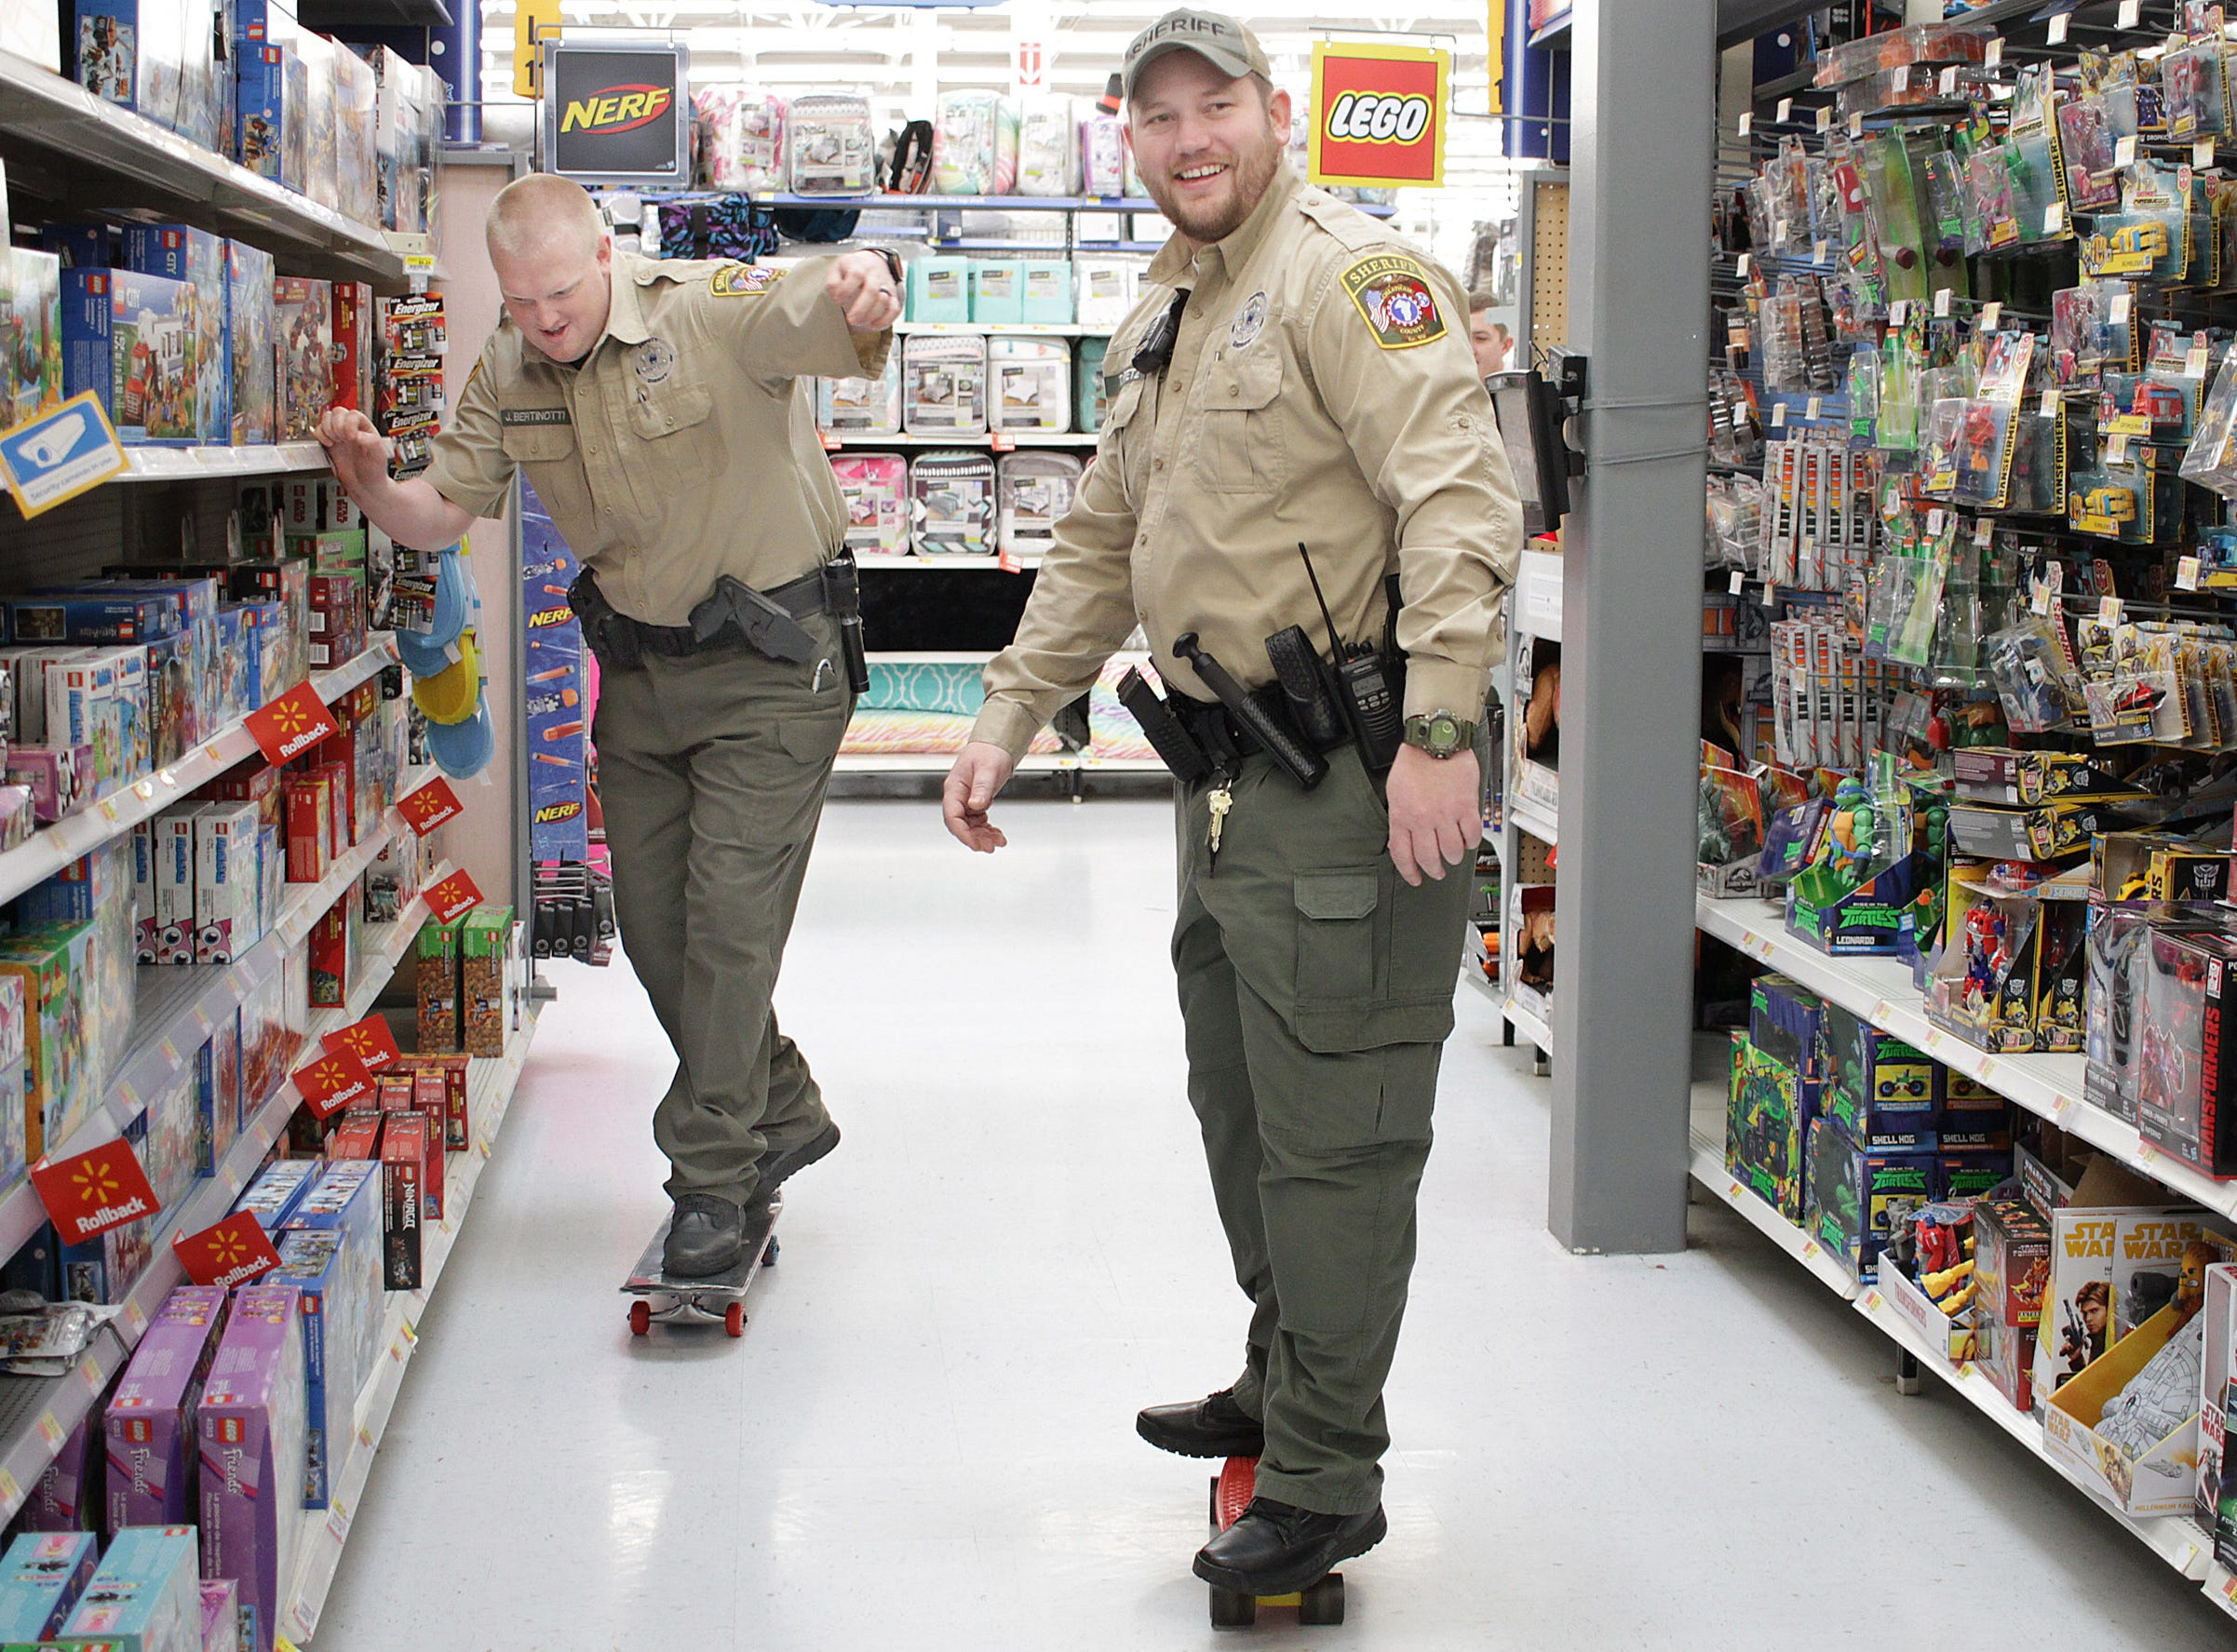 L-R Officers Travis Kretz and James Bertinotti are part of Cheatham County's Skateboard force as they show their skills during Shop with a Cop in Ashland City on Saturday, December 15, 2018.